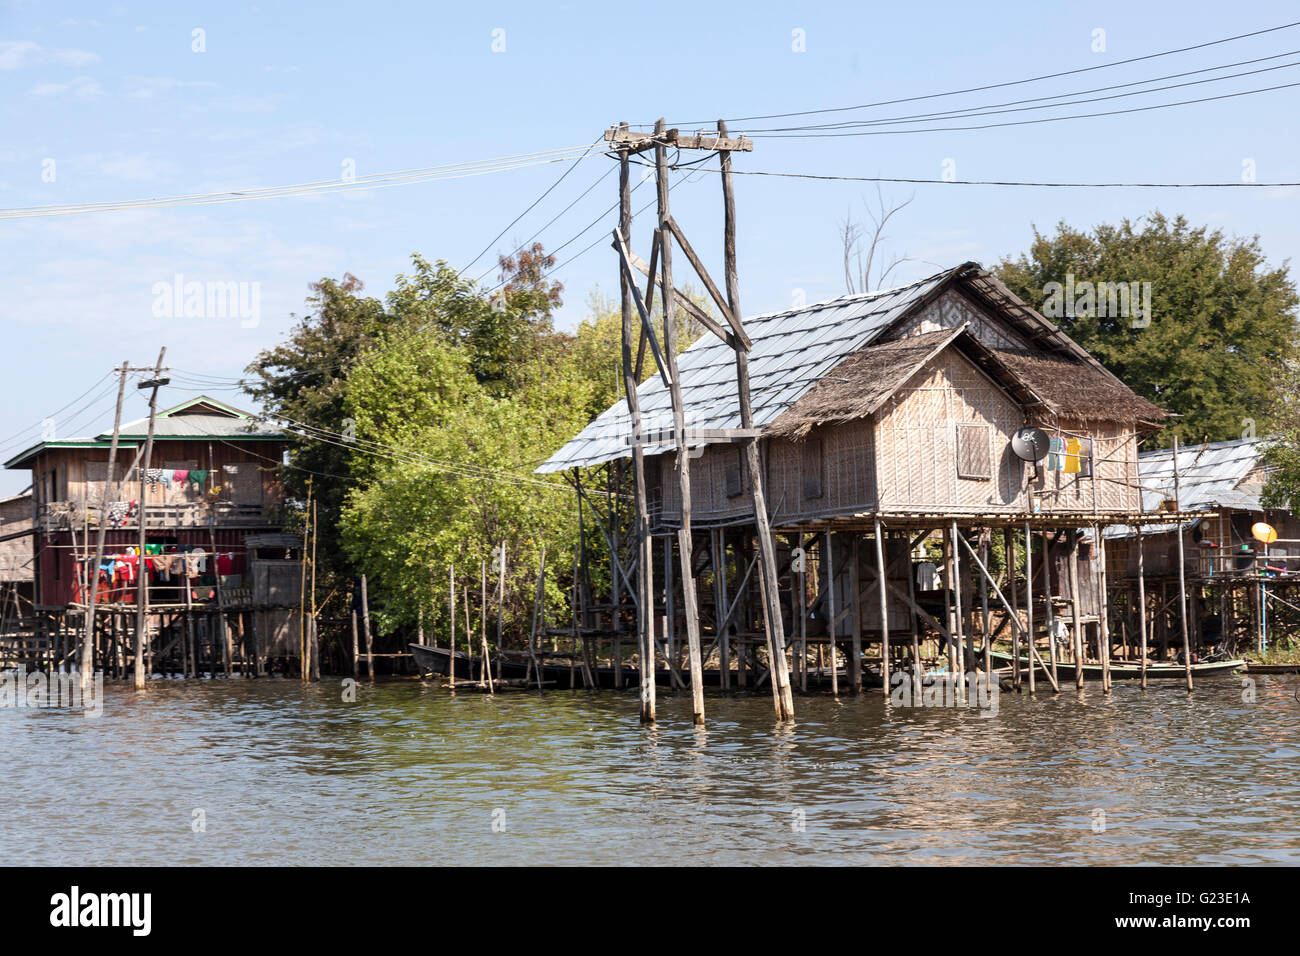 Light and on top of their stilts, the Inle Lake houses surprise by the variety of their shapes and colours (Myanmar). - Stock Image